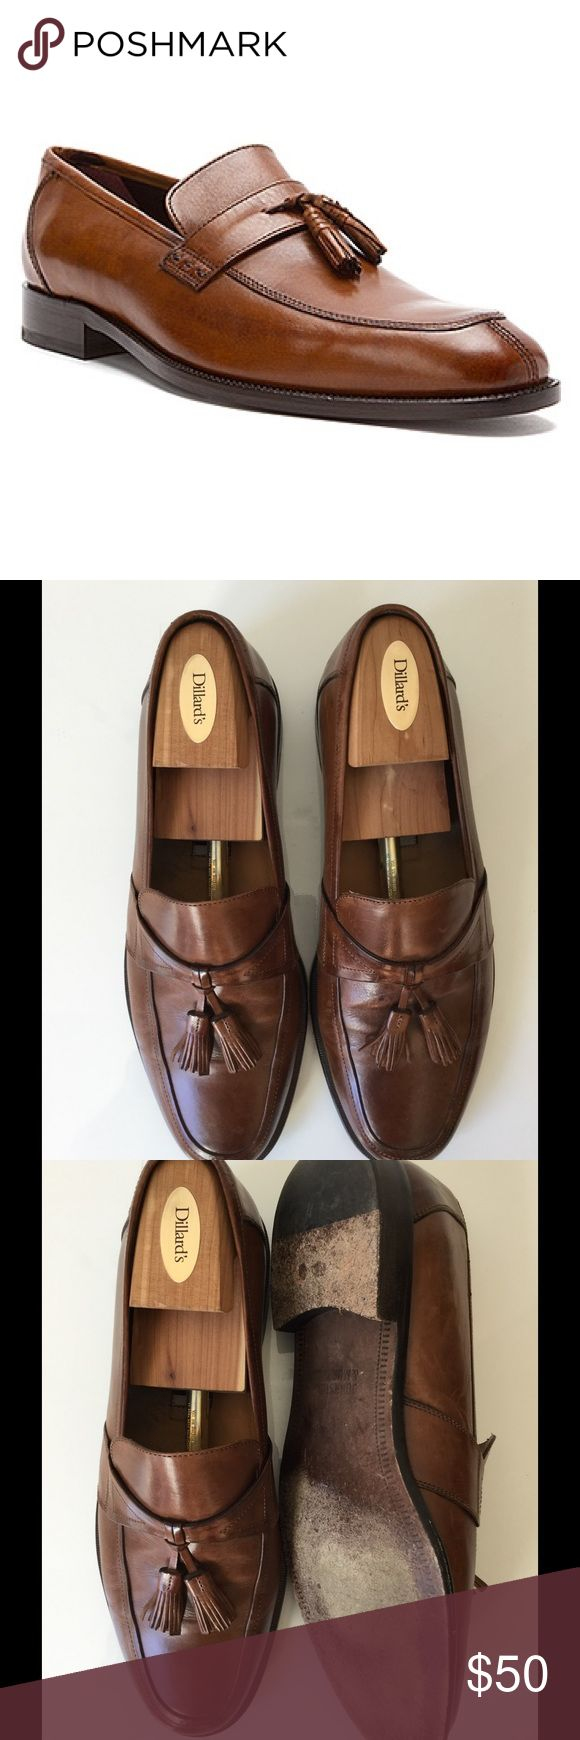 Johnston and Murphy Men's Tassel Style Dress Shoe Johnson and Murphy Men's Tassel Style Dress Shoe. Size is 11 medium and color is brown. These shoes are from my personal closet and are in really good condition. Pet free smoke free home. Next day shipping. Johnston & Murphy Shoes Loafers & Slip-Ons